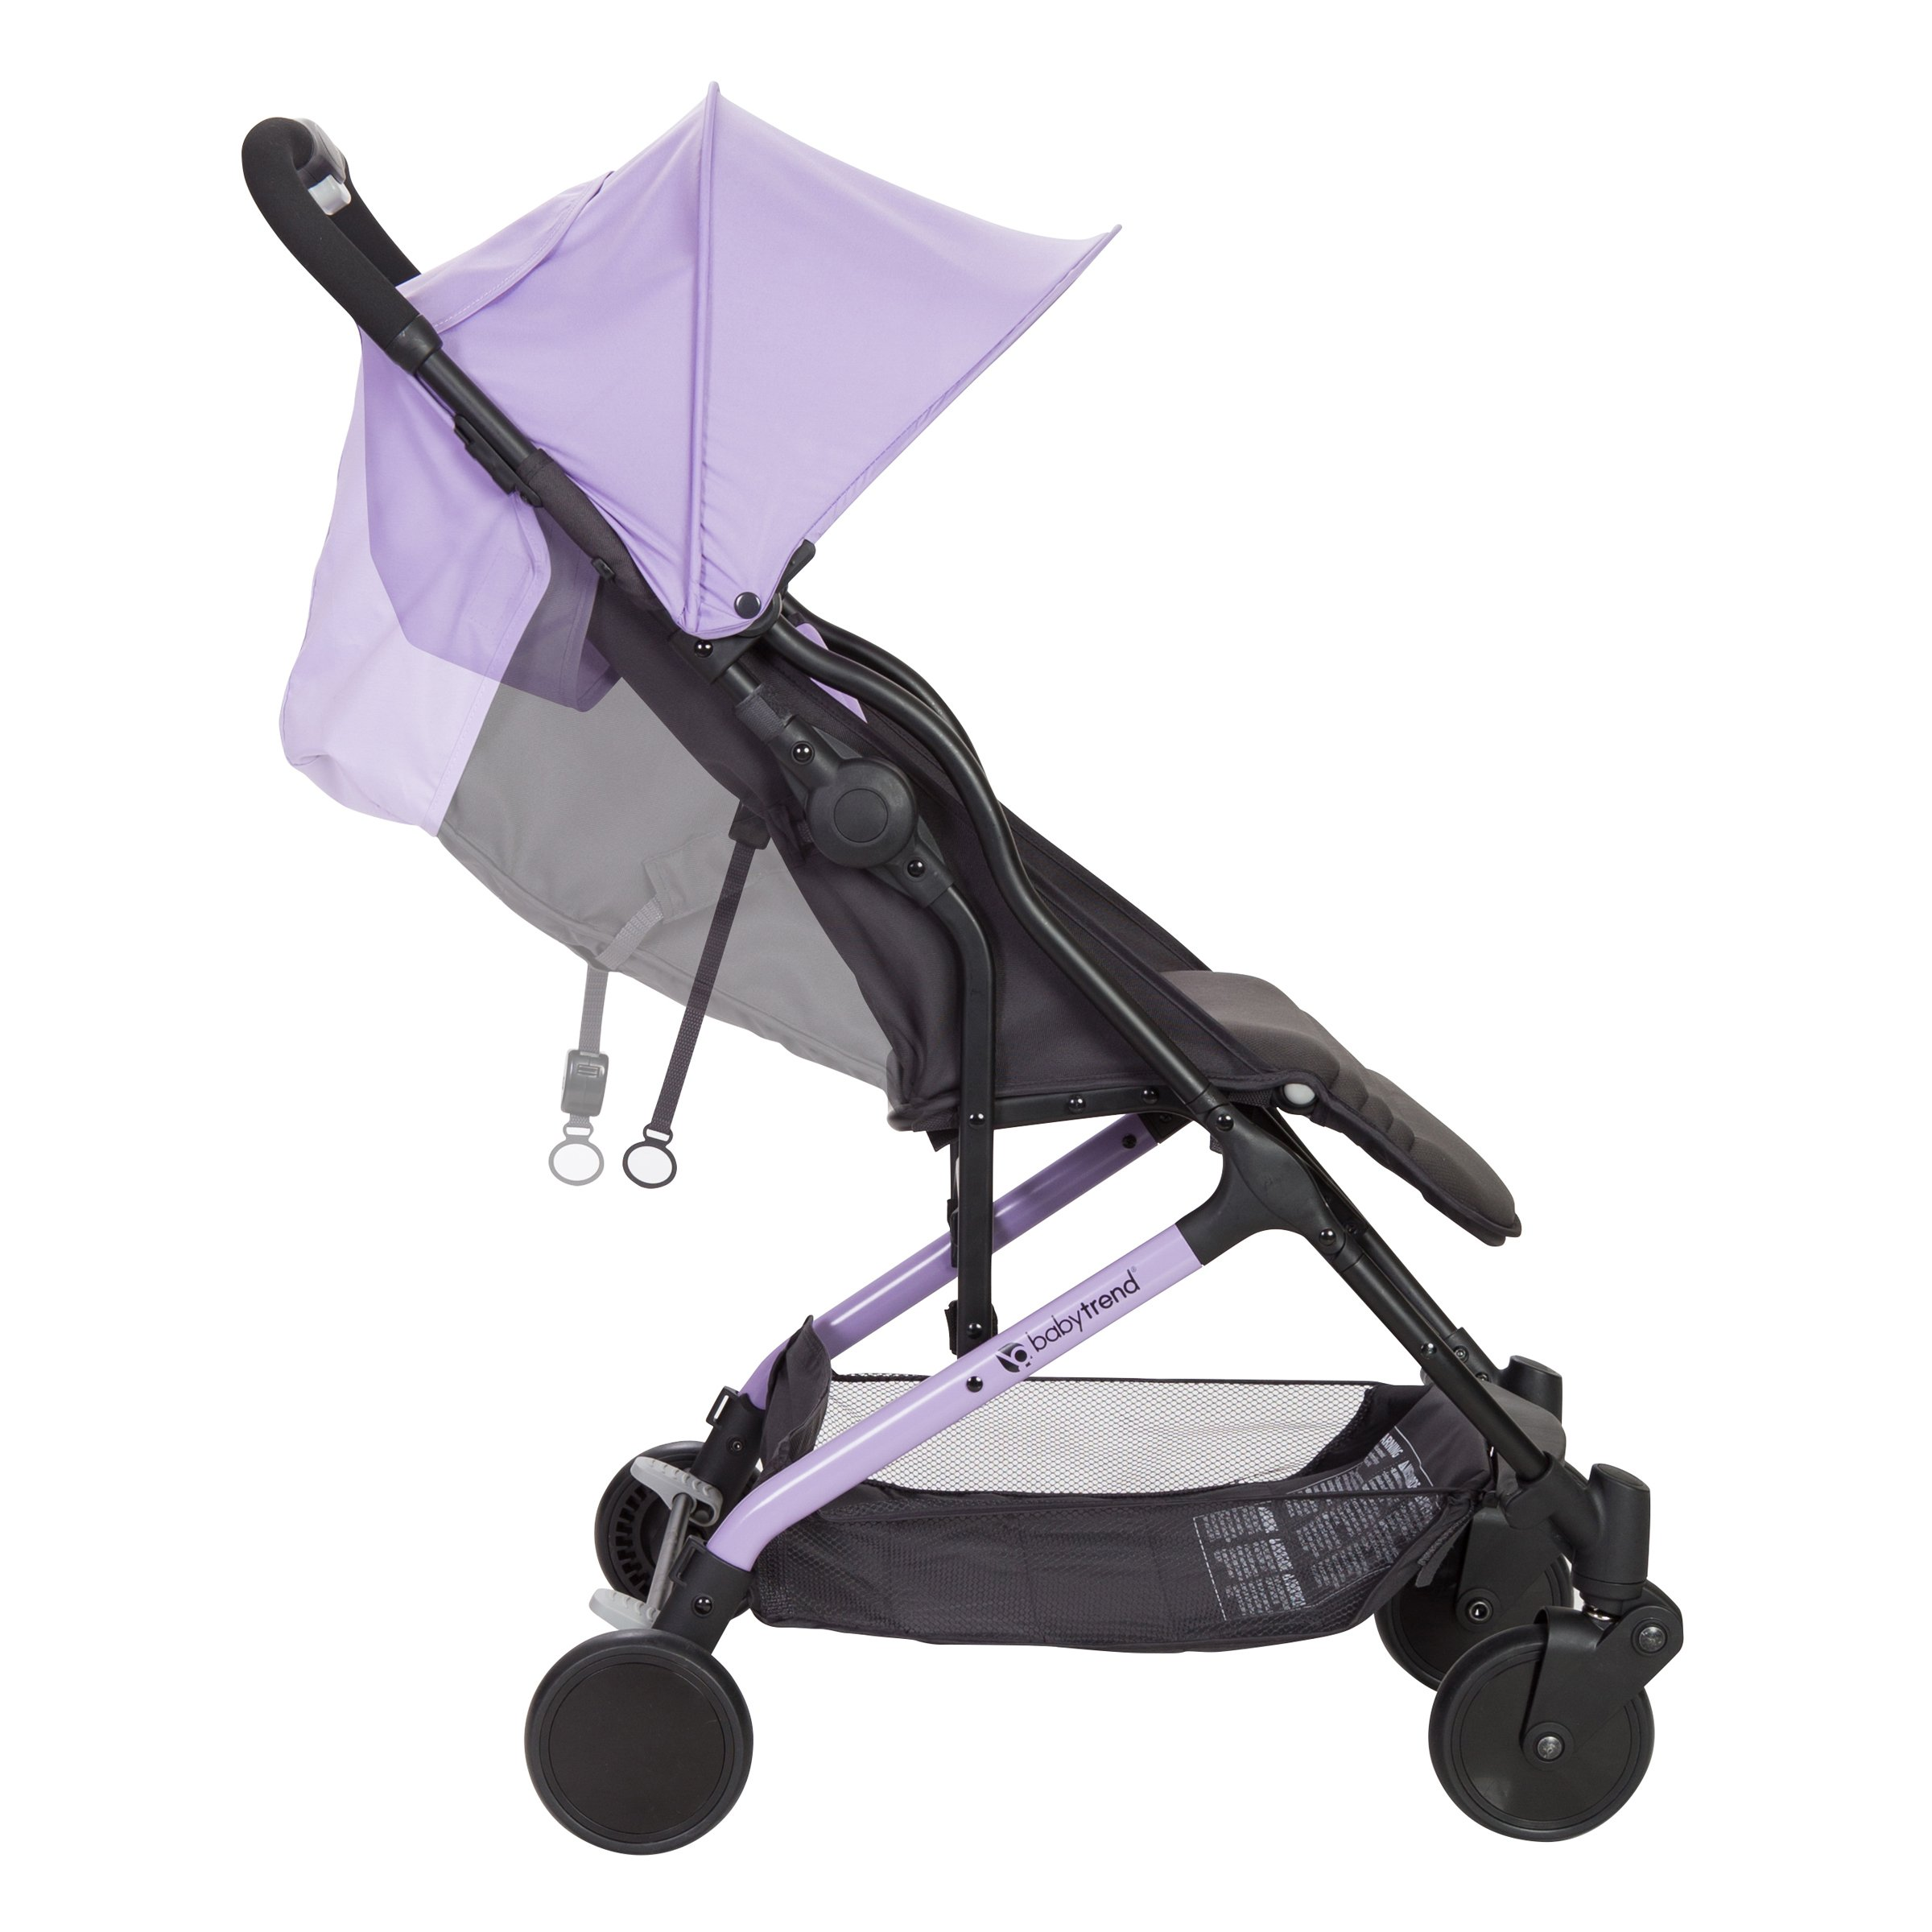 Baby Trend Tri-Fold Mini Stroller, Lilac by Baby Trend (Image #2)